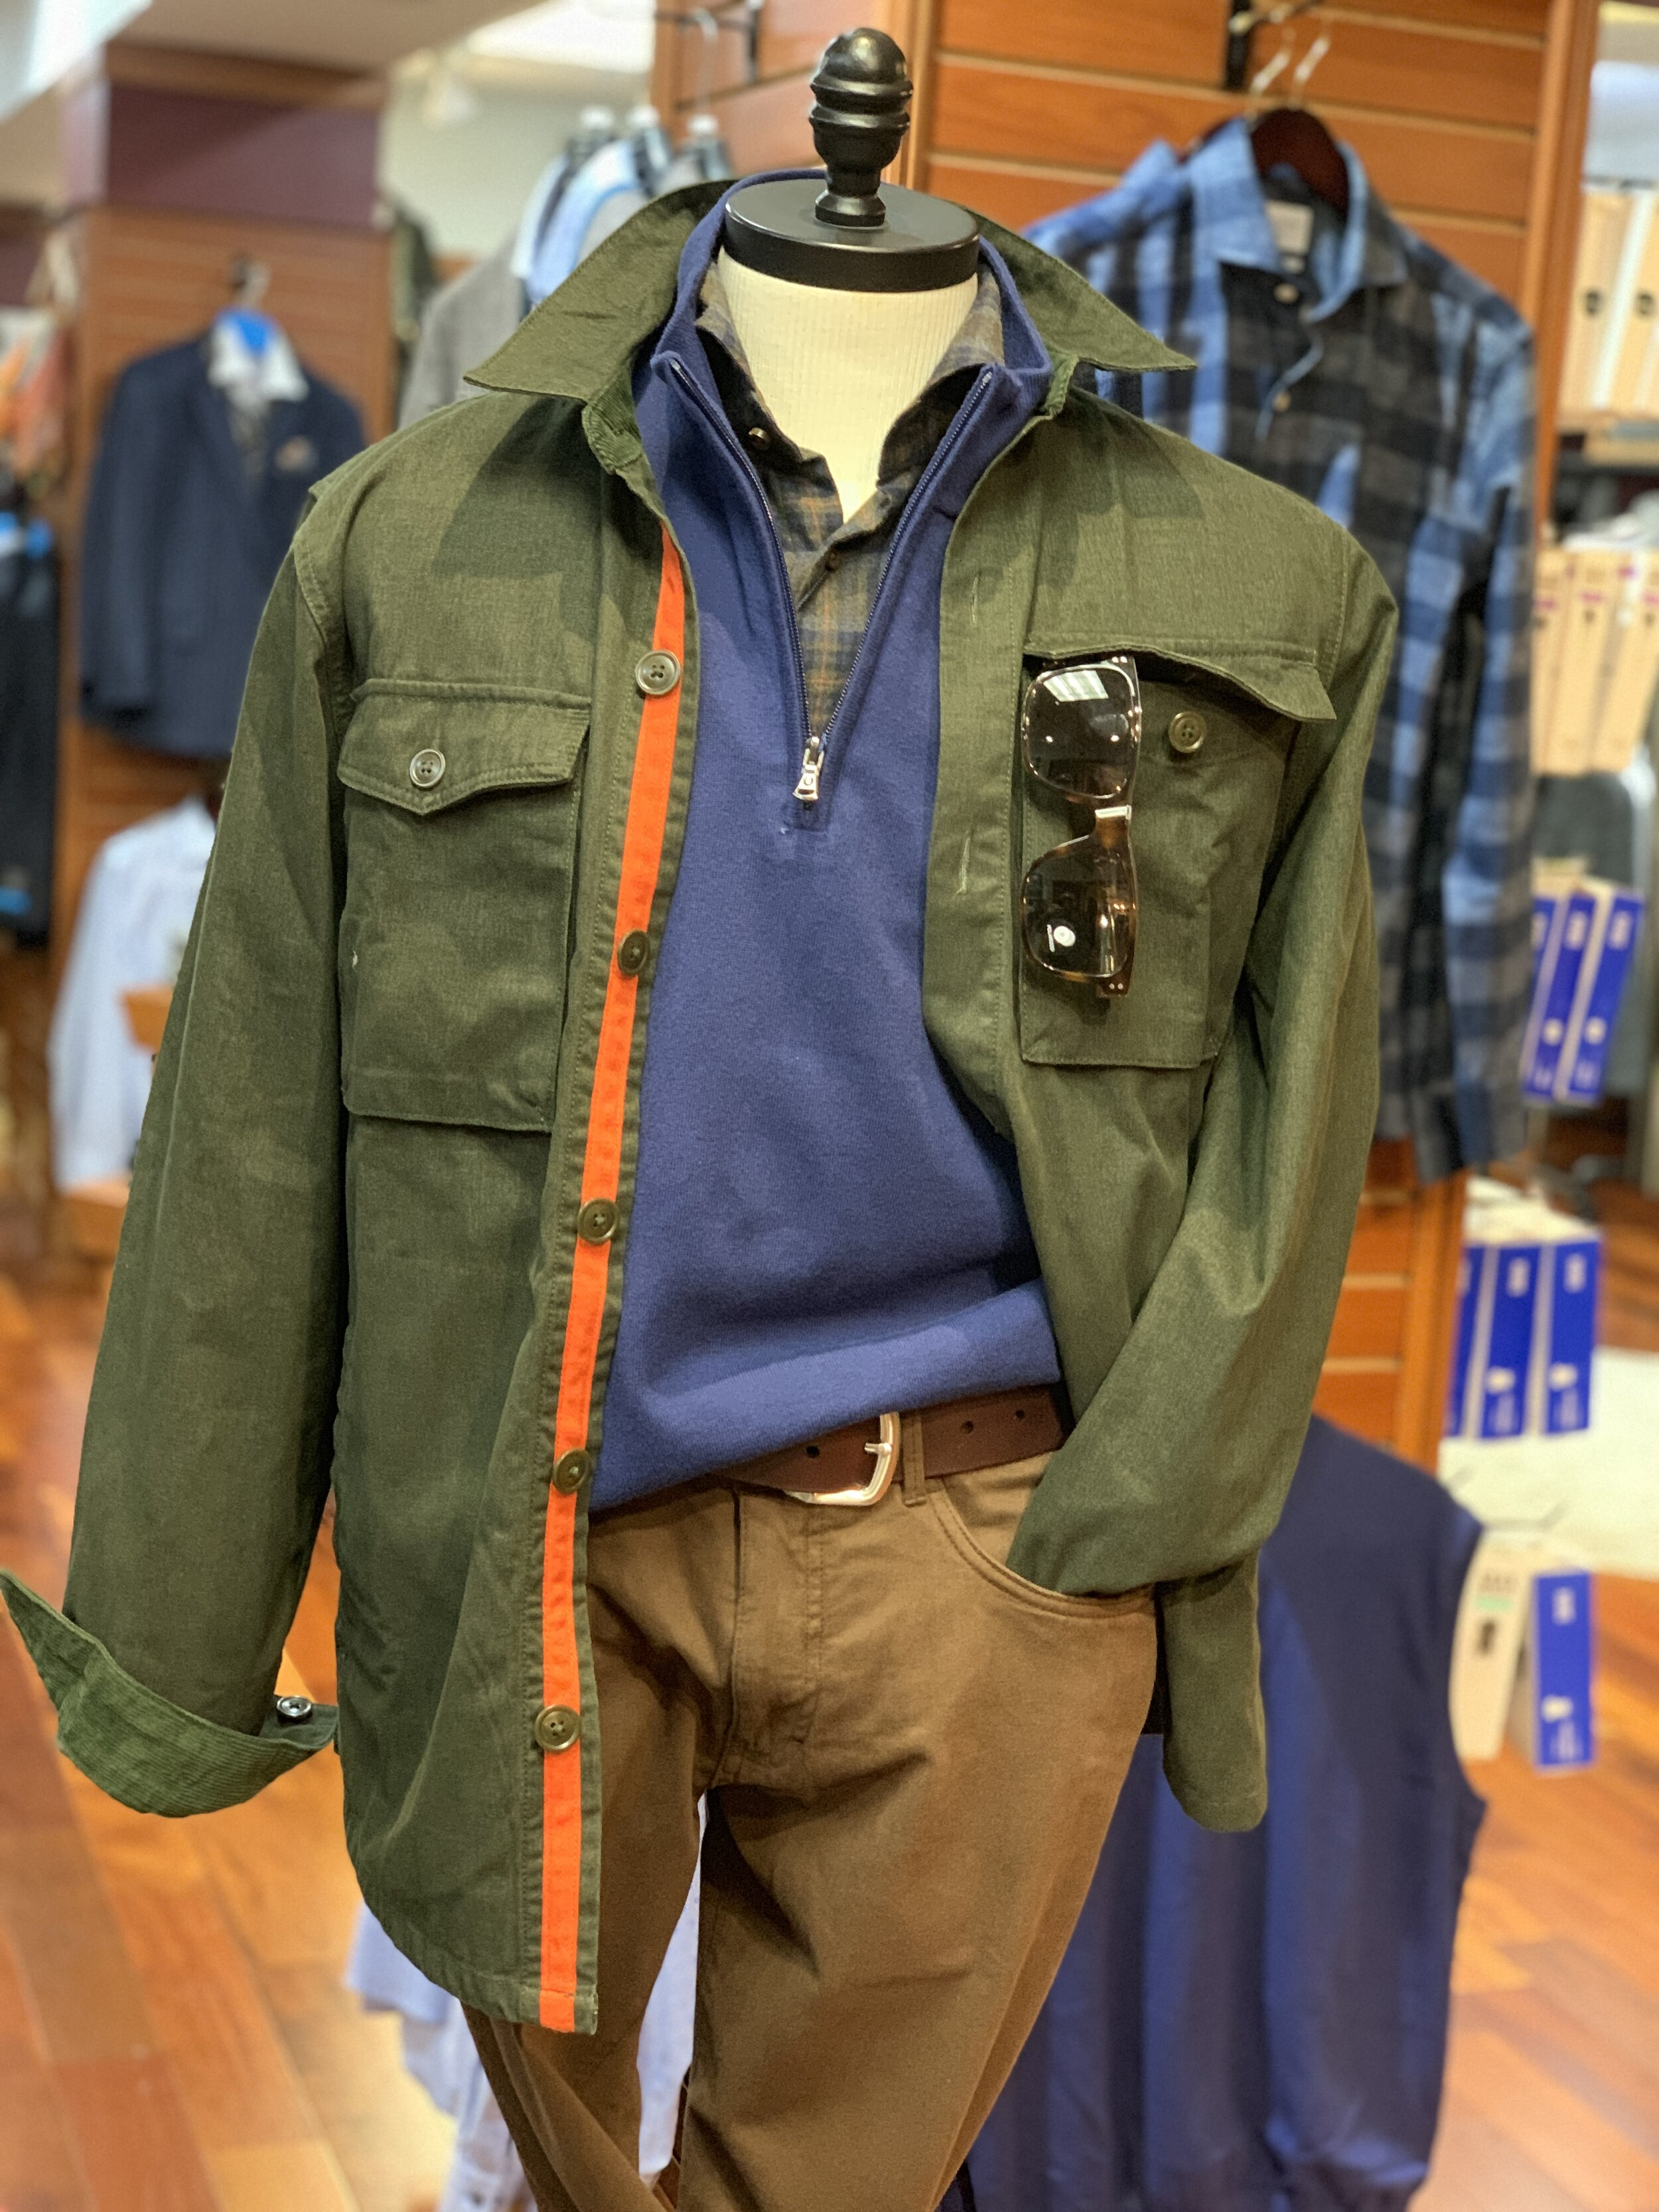 Barbour Overshirt, Oxford Pullover, Stenströms Sportshirt, Shwood Sunglasses, Duck Head Canvas Pants